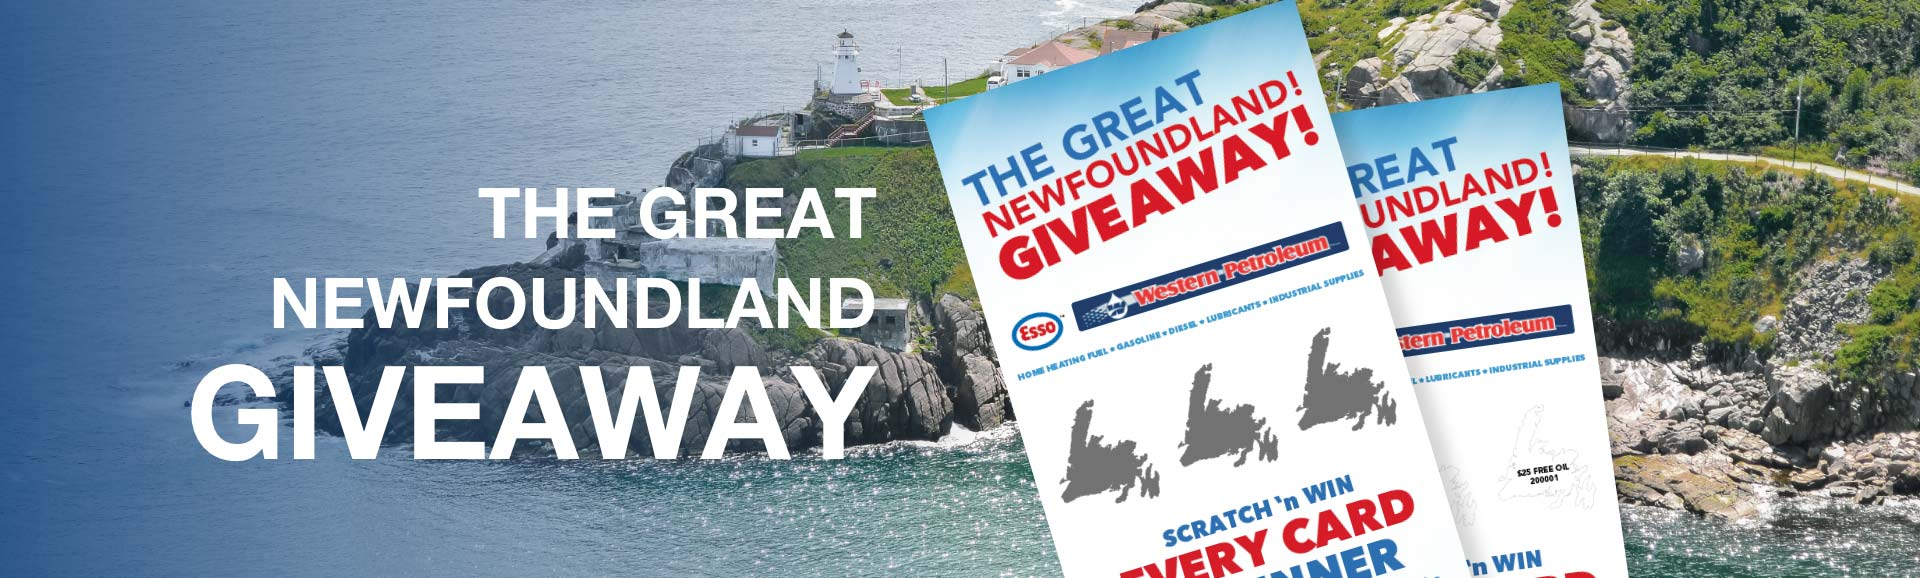 The Great Newfoundland Giveaway